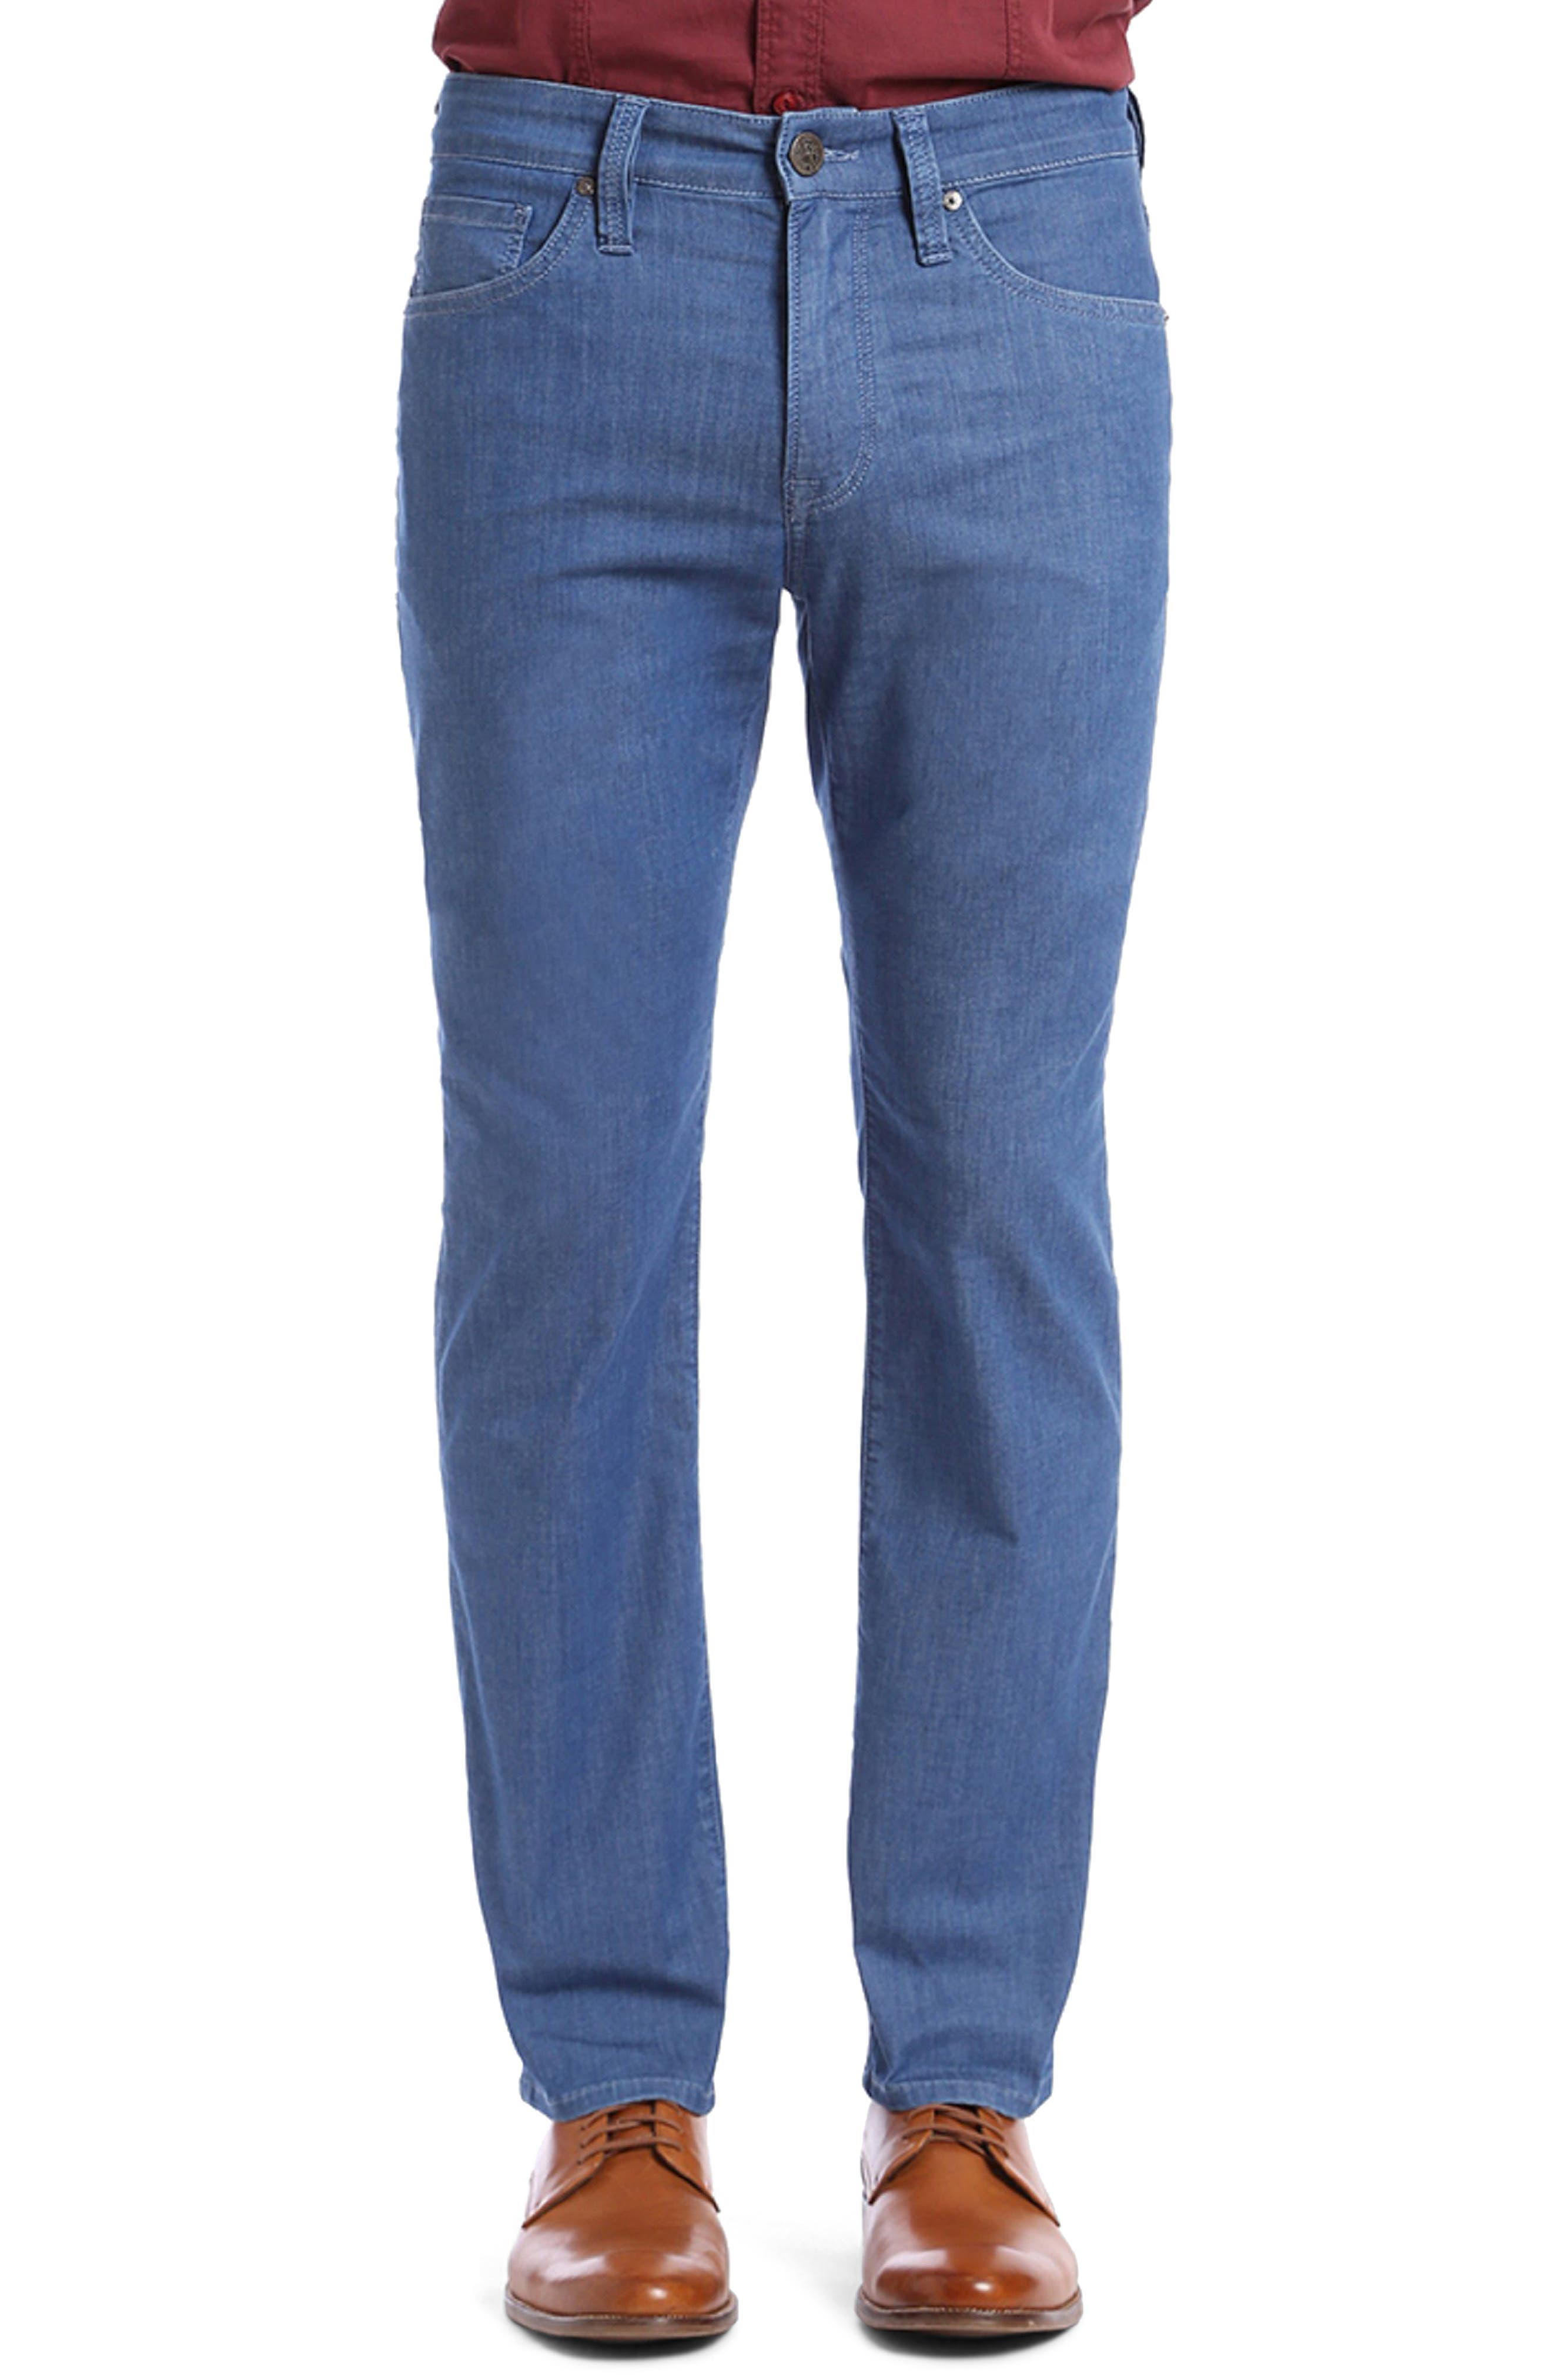 Courage Straight Fit Jeans,                         Main,                         color, MID MAUI DENIM